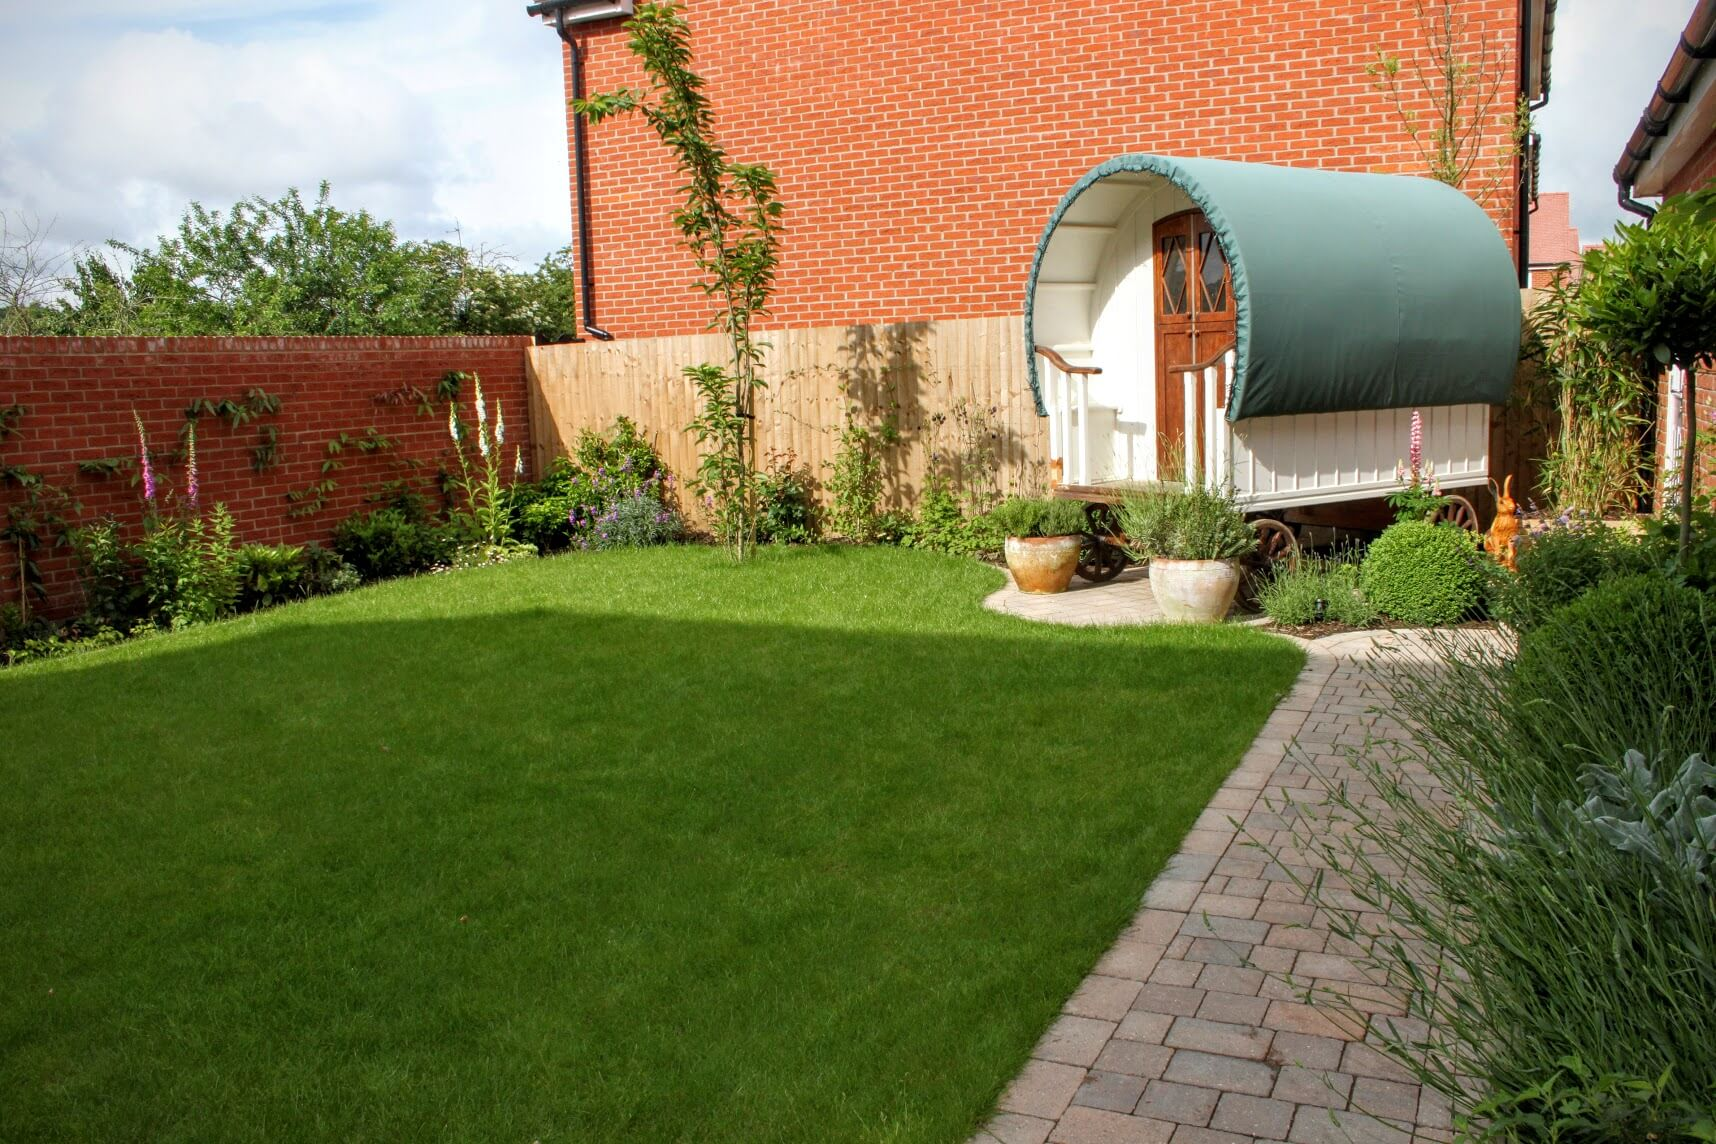 Home oxford garden design for Garden designs uk